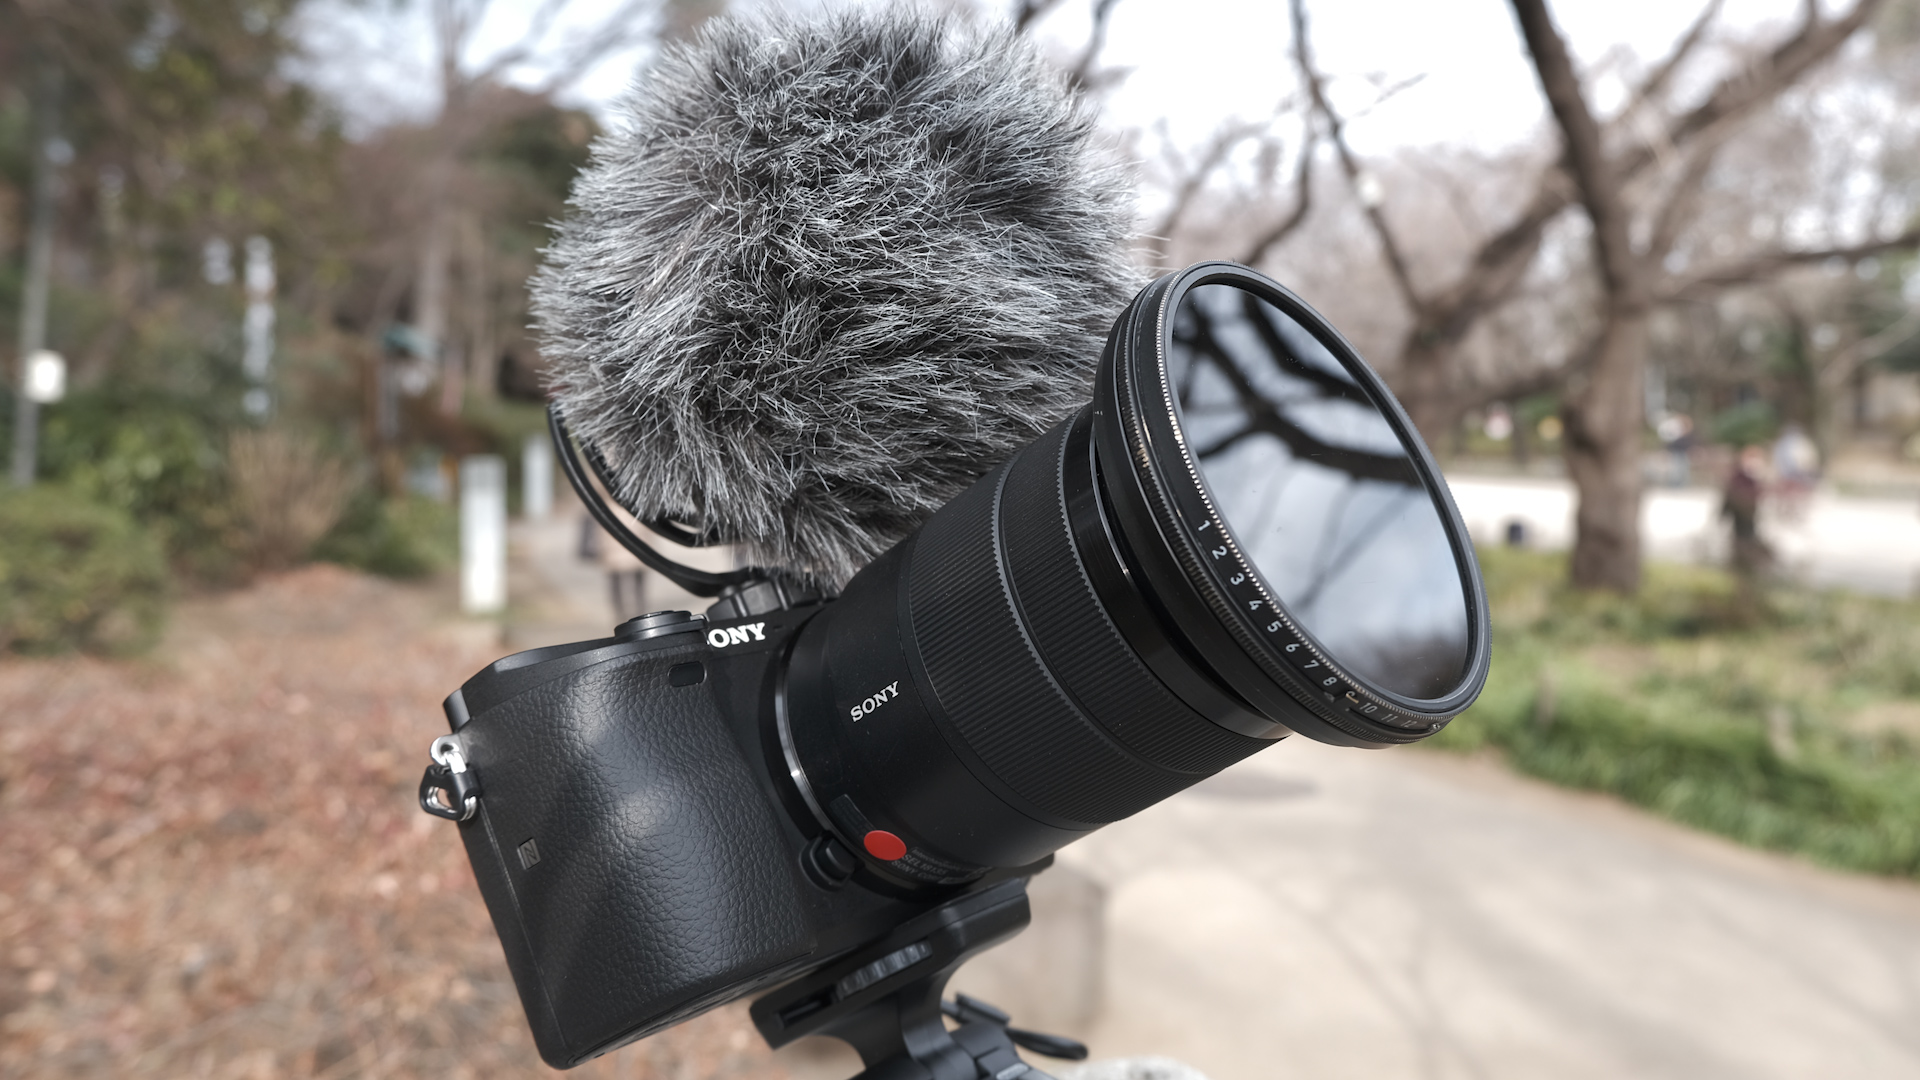 Sony a6400 Review - Is the End of Manual Focus Lenses Near? | cinema5D